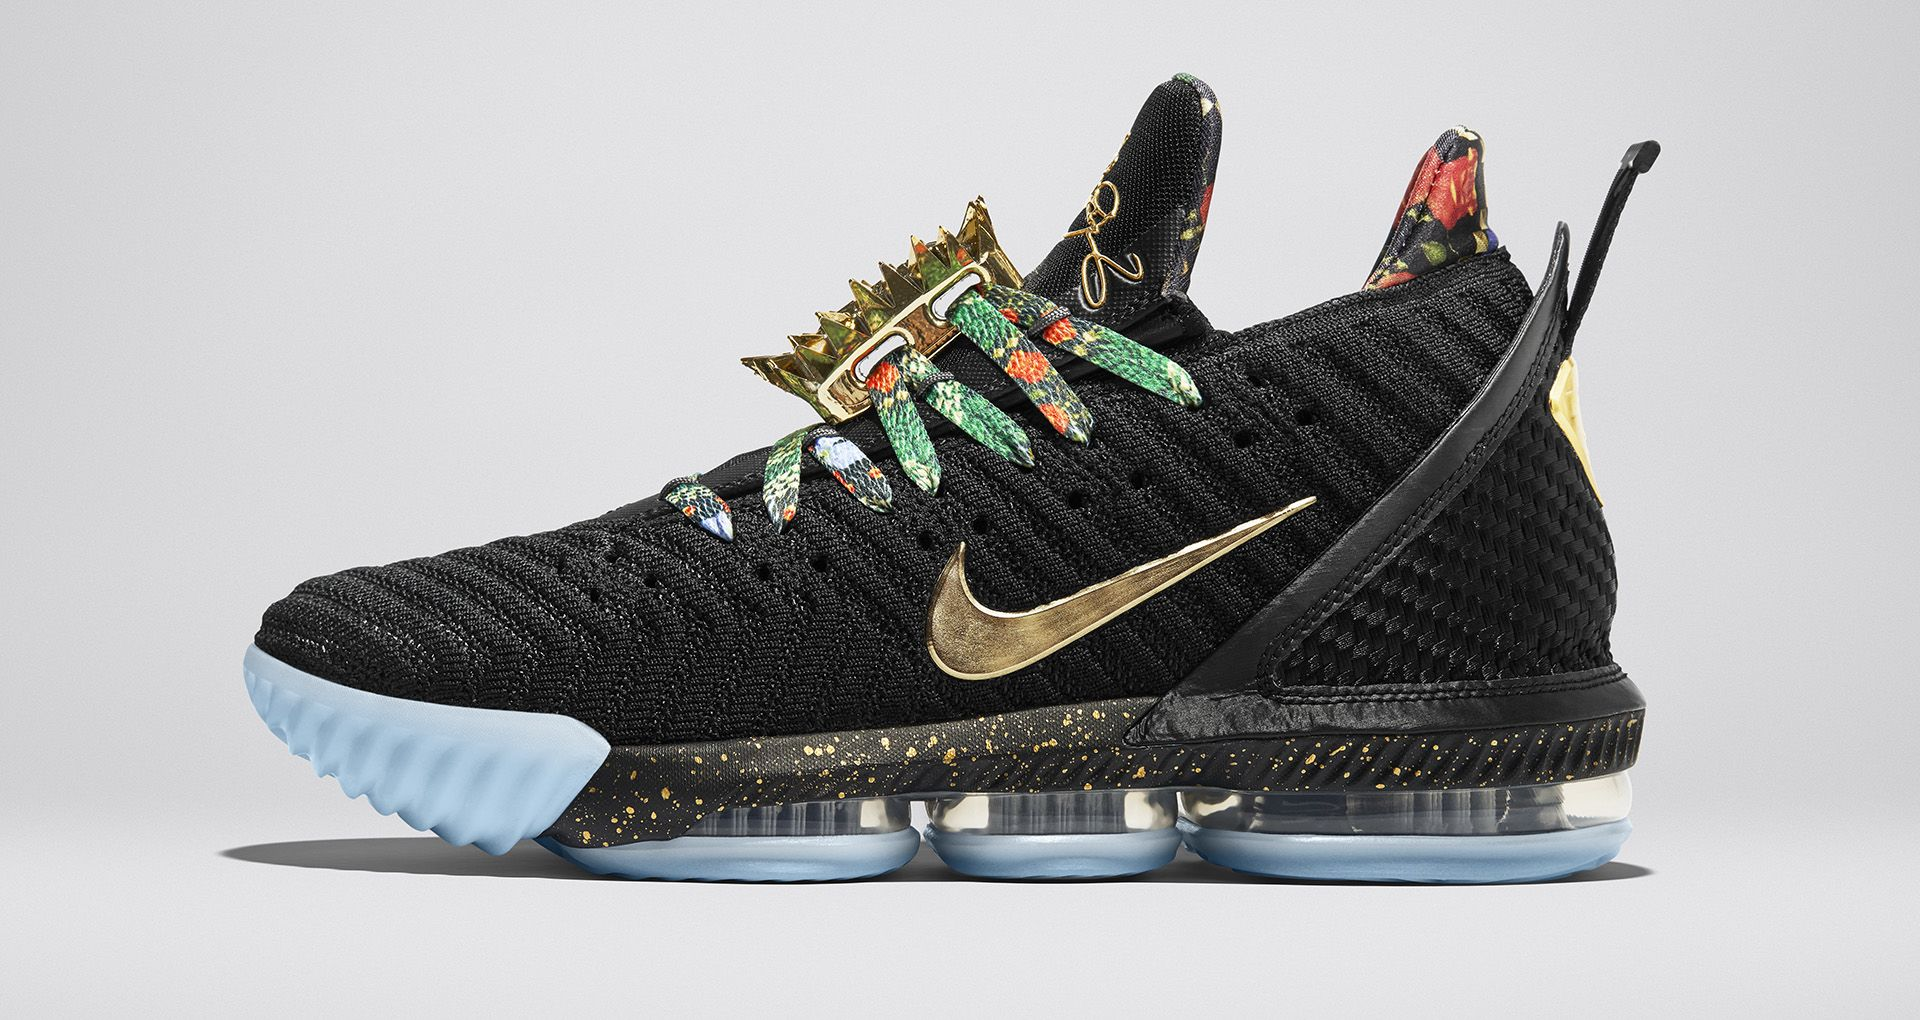 08-nike-lebron-16-watch-kings-throne-ci1518-001